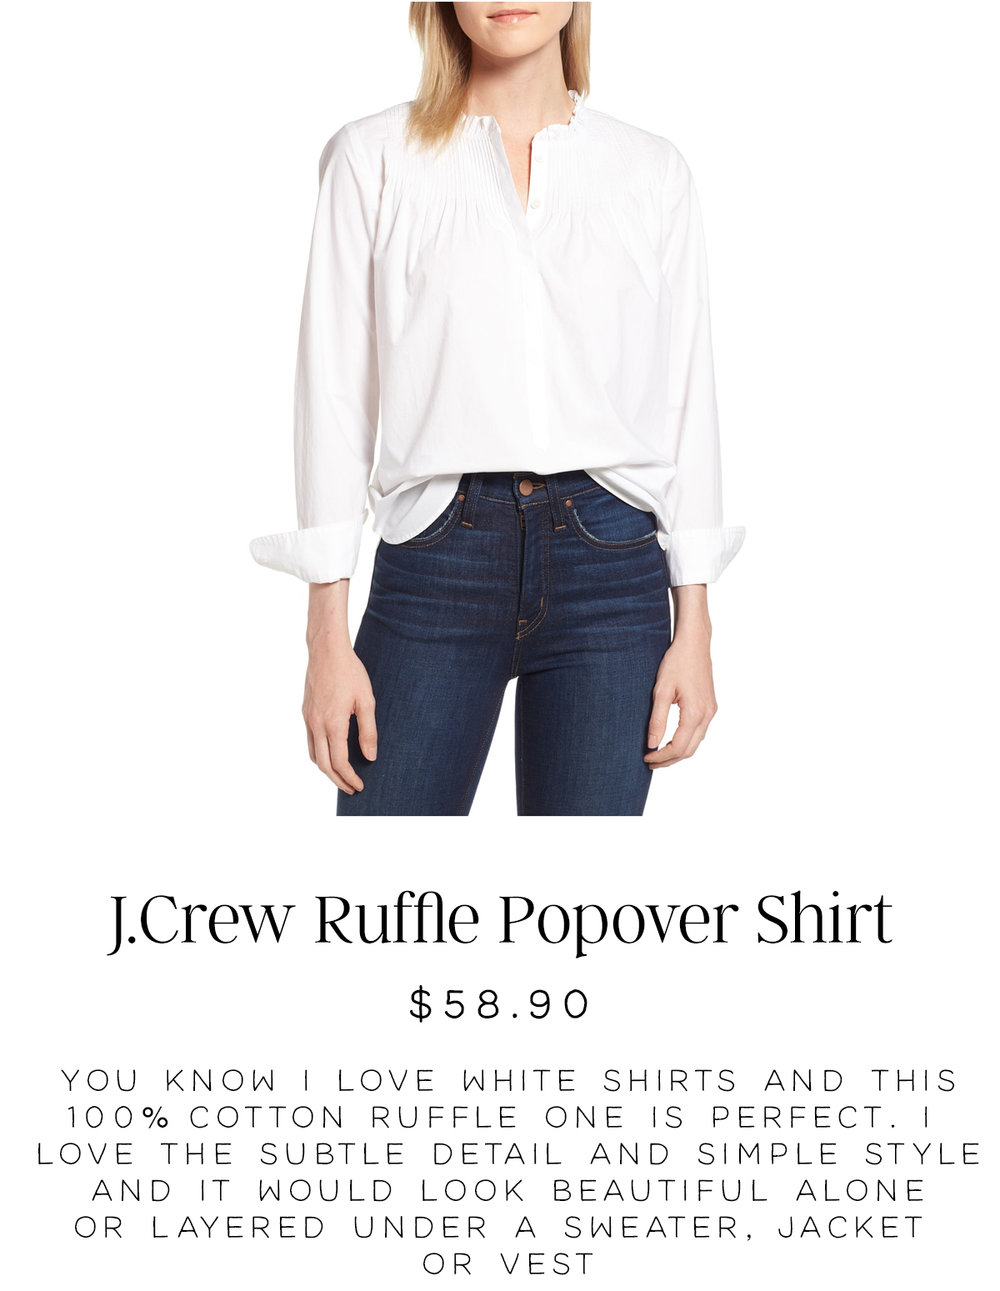 nordstrom-anniversary-sale-jcrew-ruffle-cotton-shirt.jpg